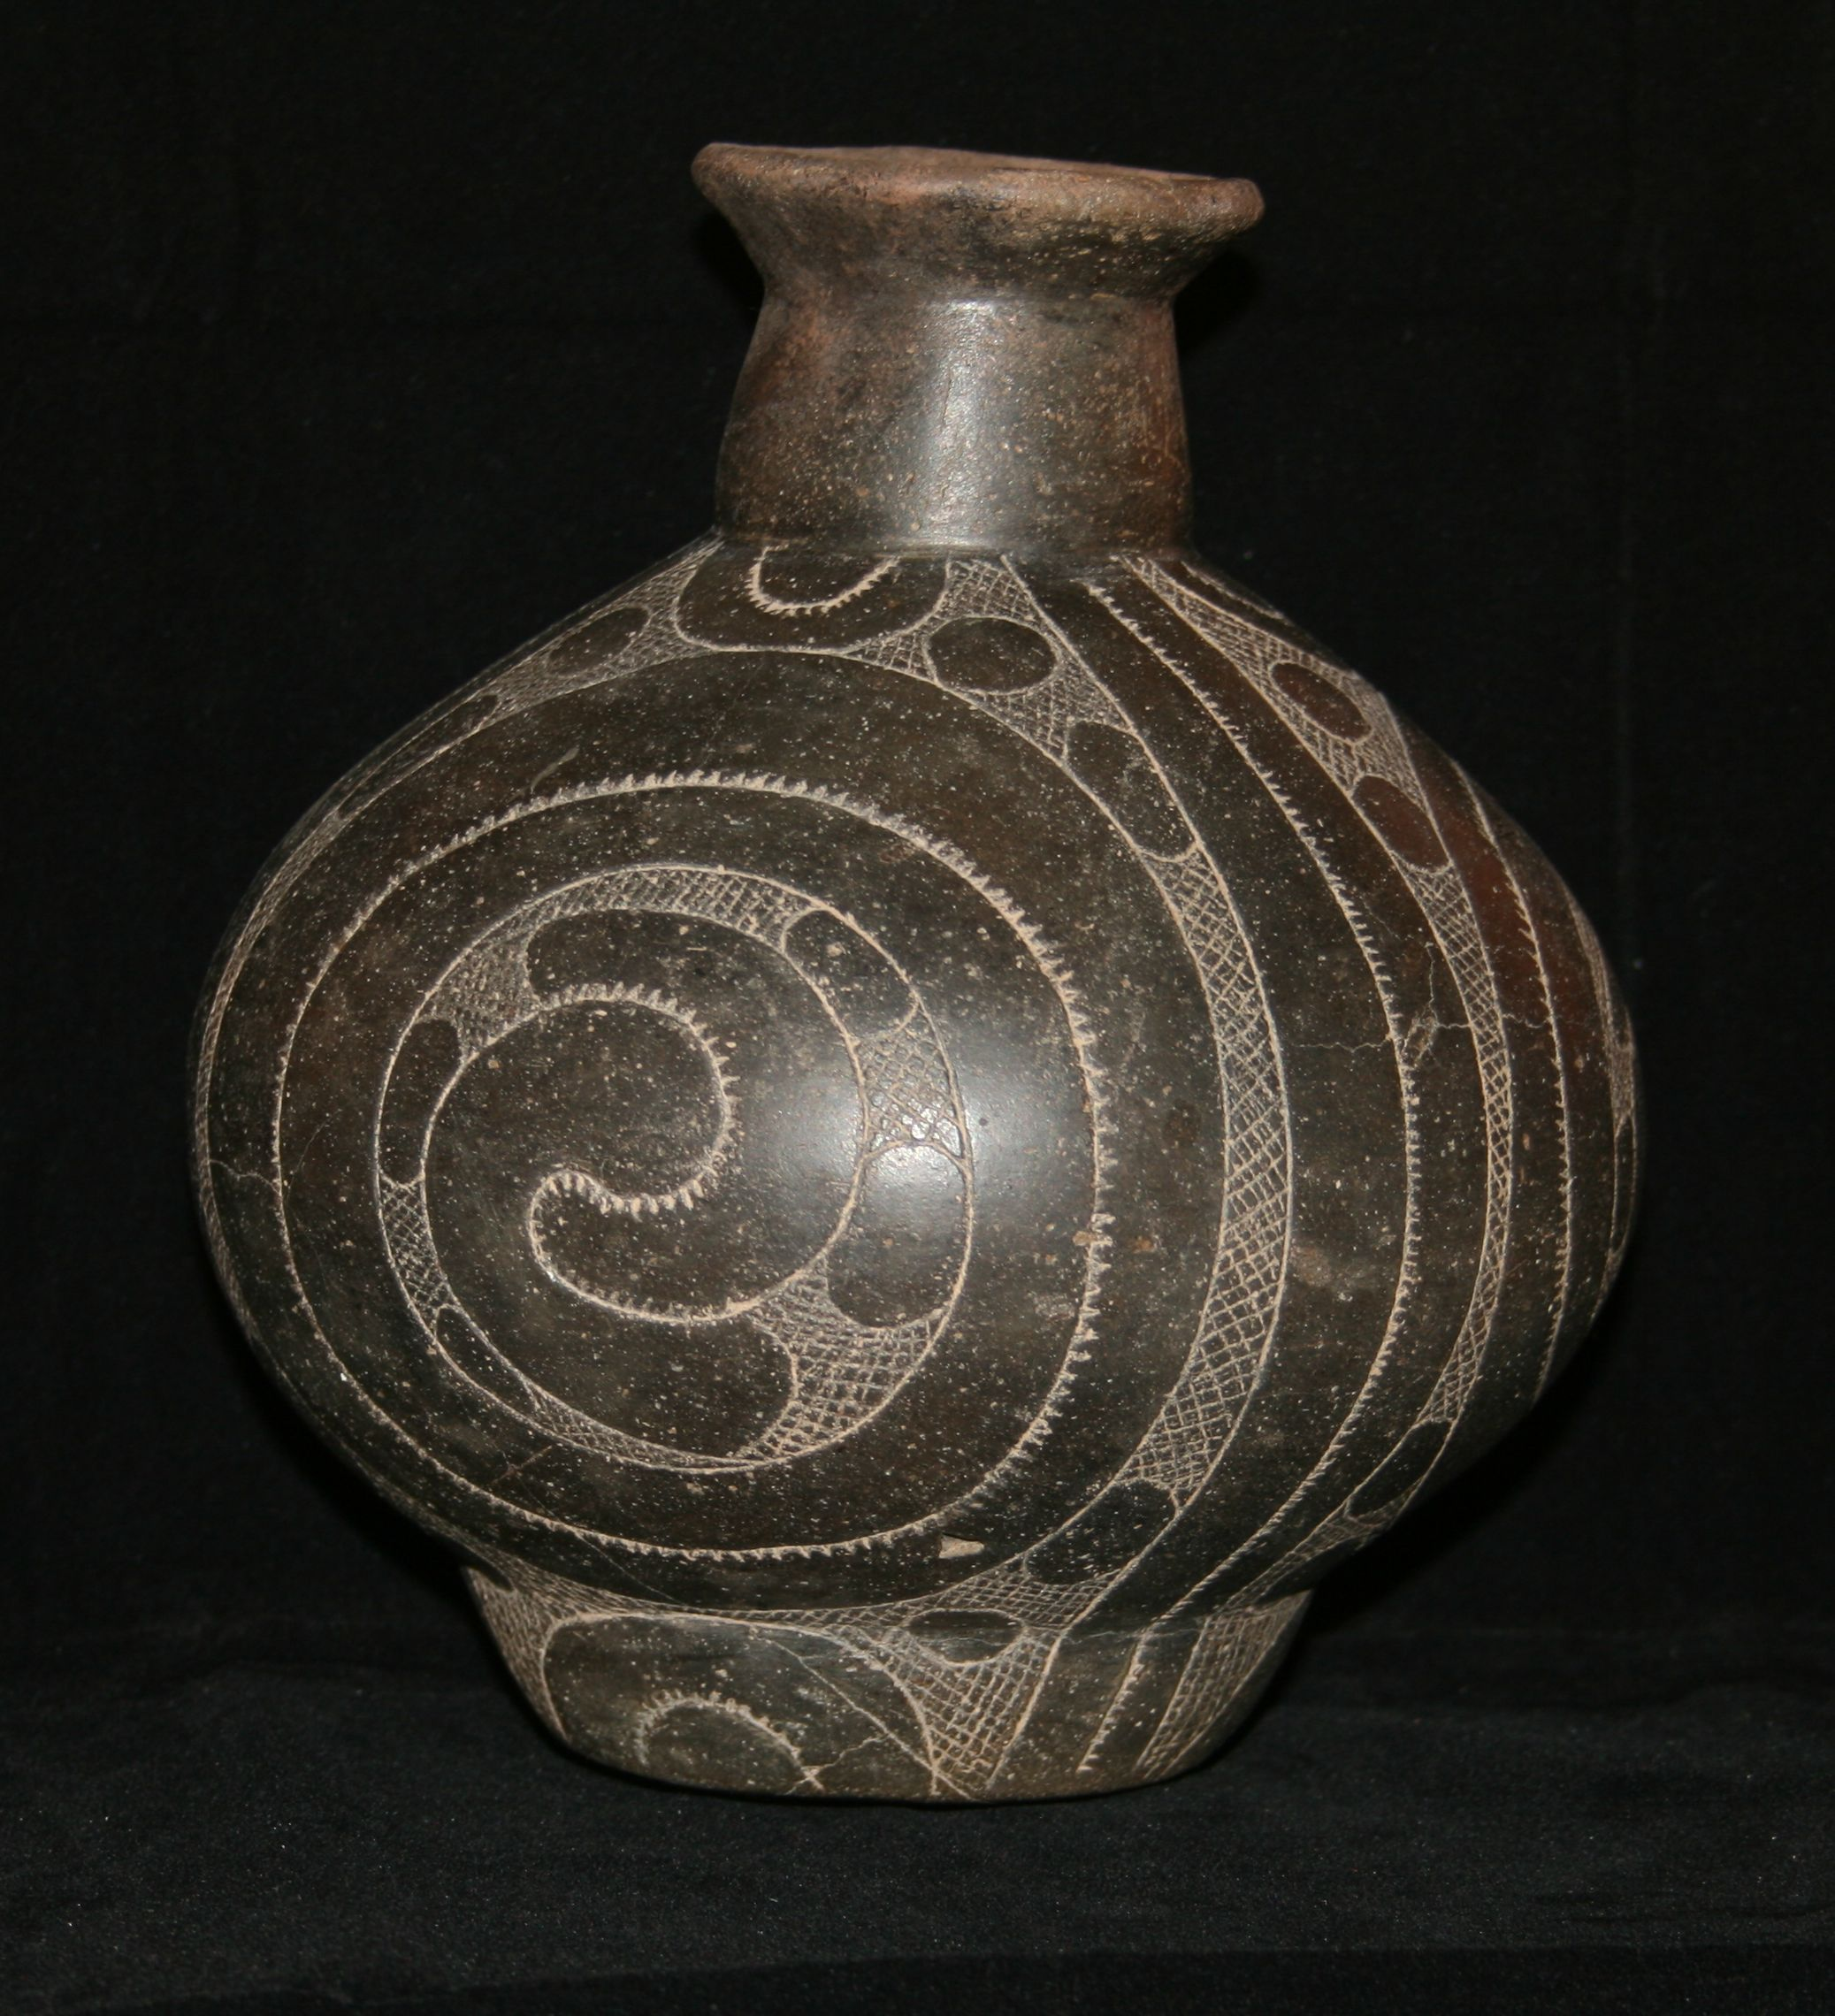 Hodges engraved bottle with proturbant footing. Found by Cleatius Thomas in Hempstead County, Arkansas.